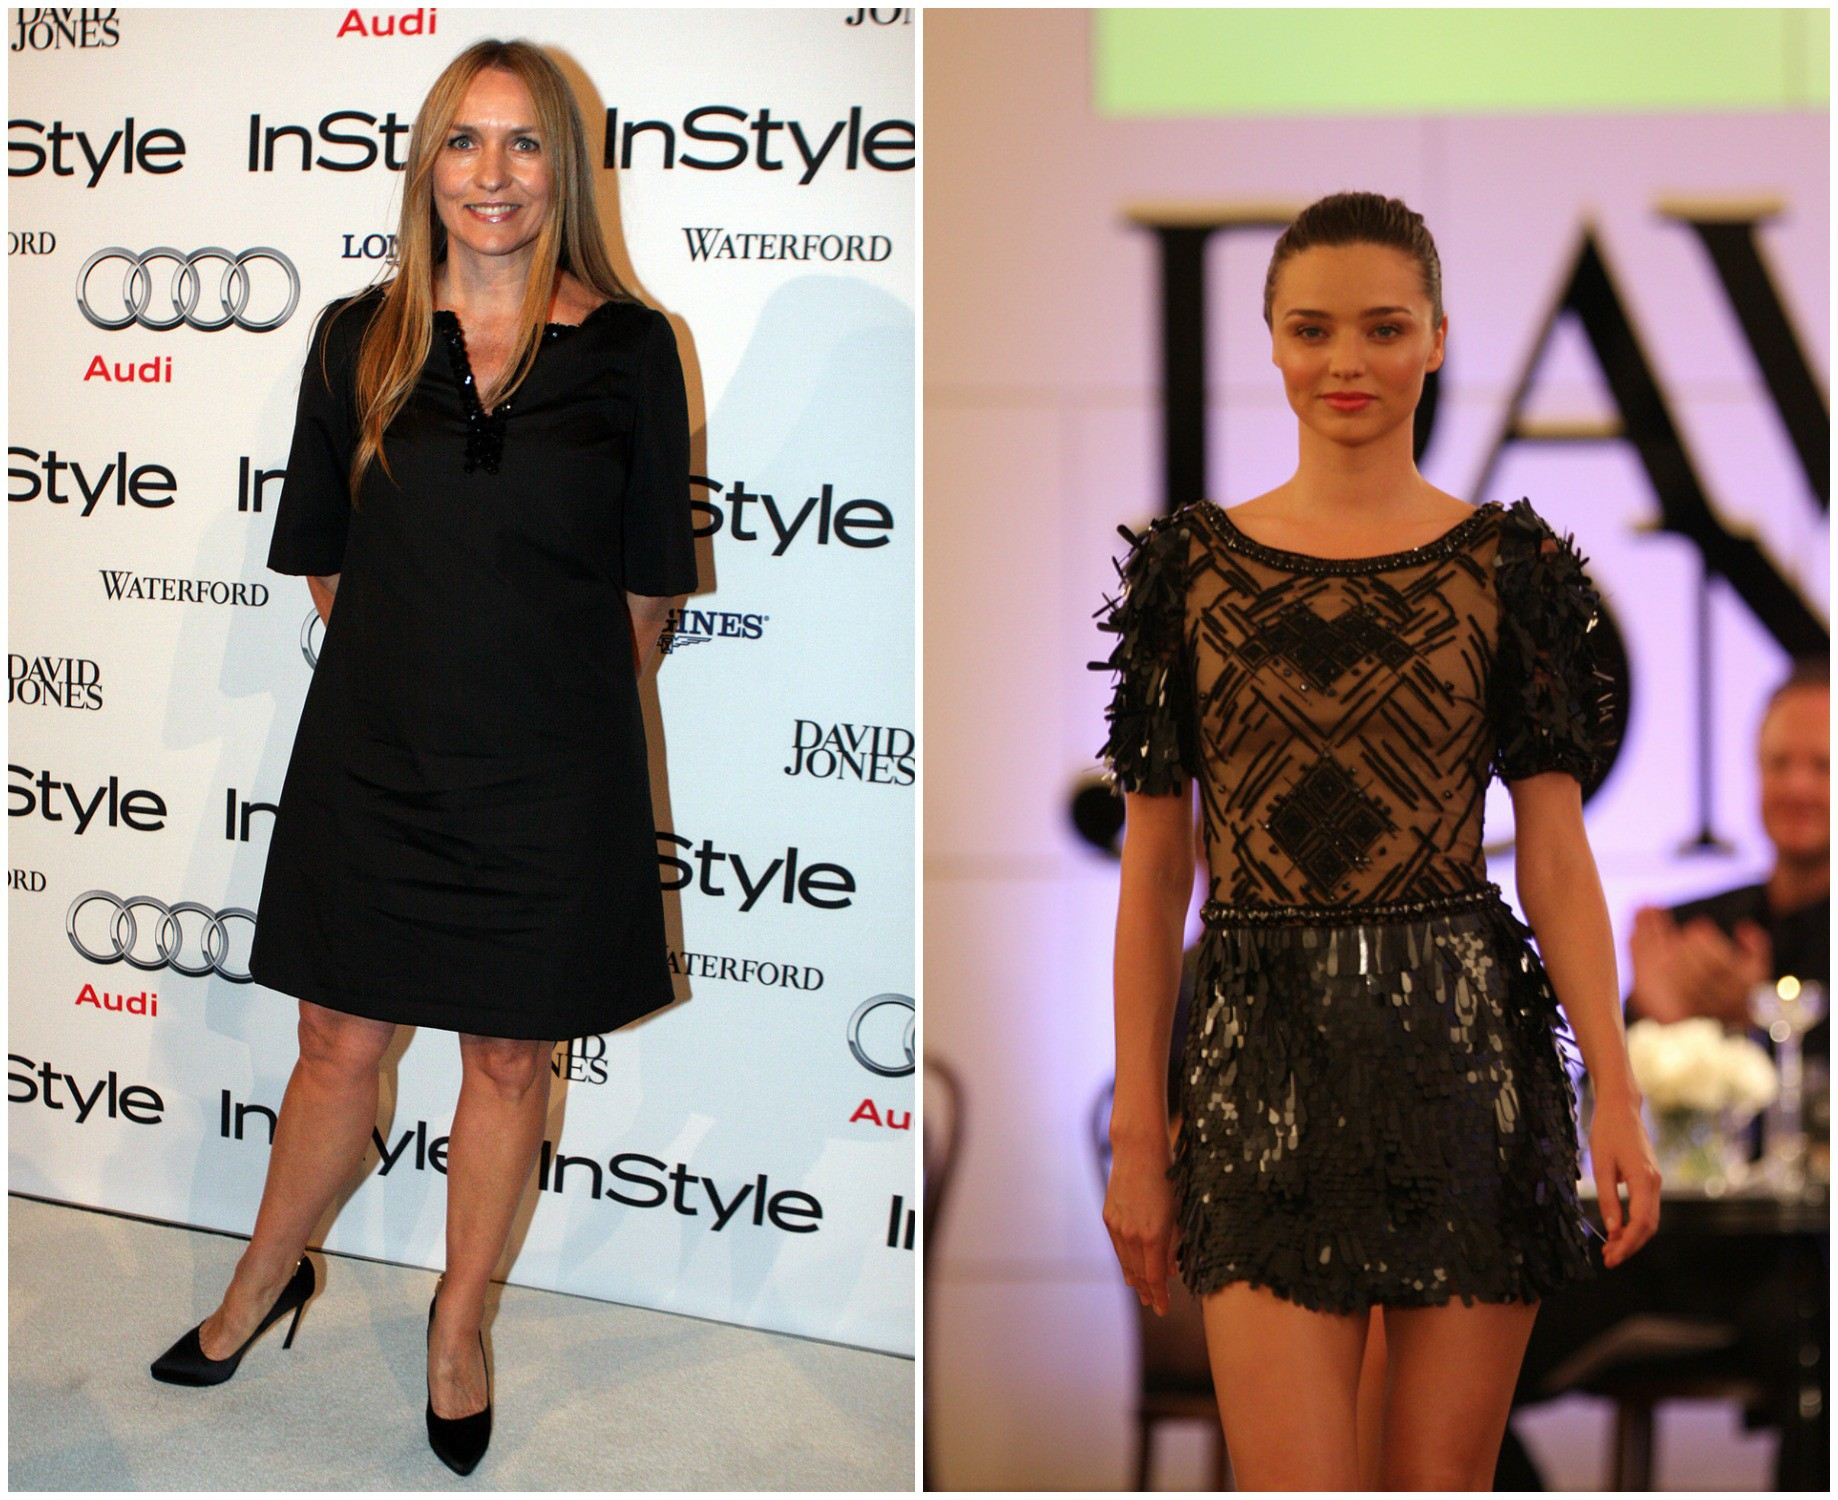 The 20 Most Iconic Fashion Designers from Australia